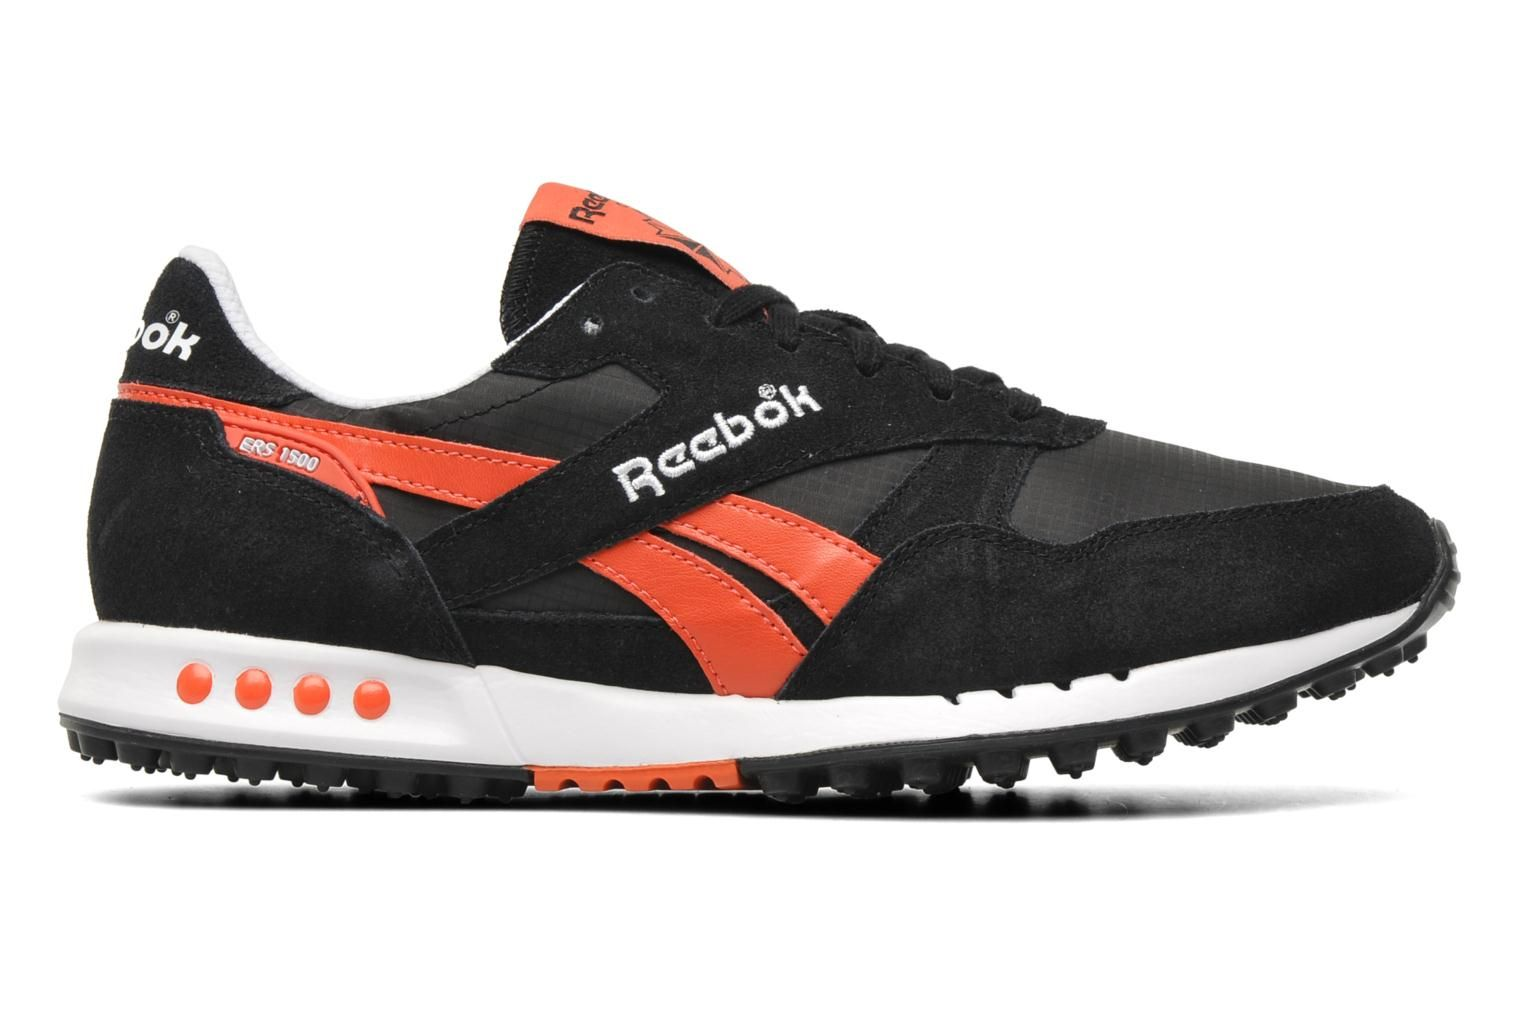 Reebok Ers 1500 Neon Trainers in Black at Sarenza.co.uk